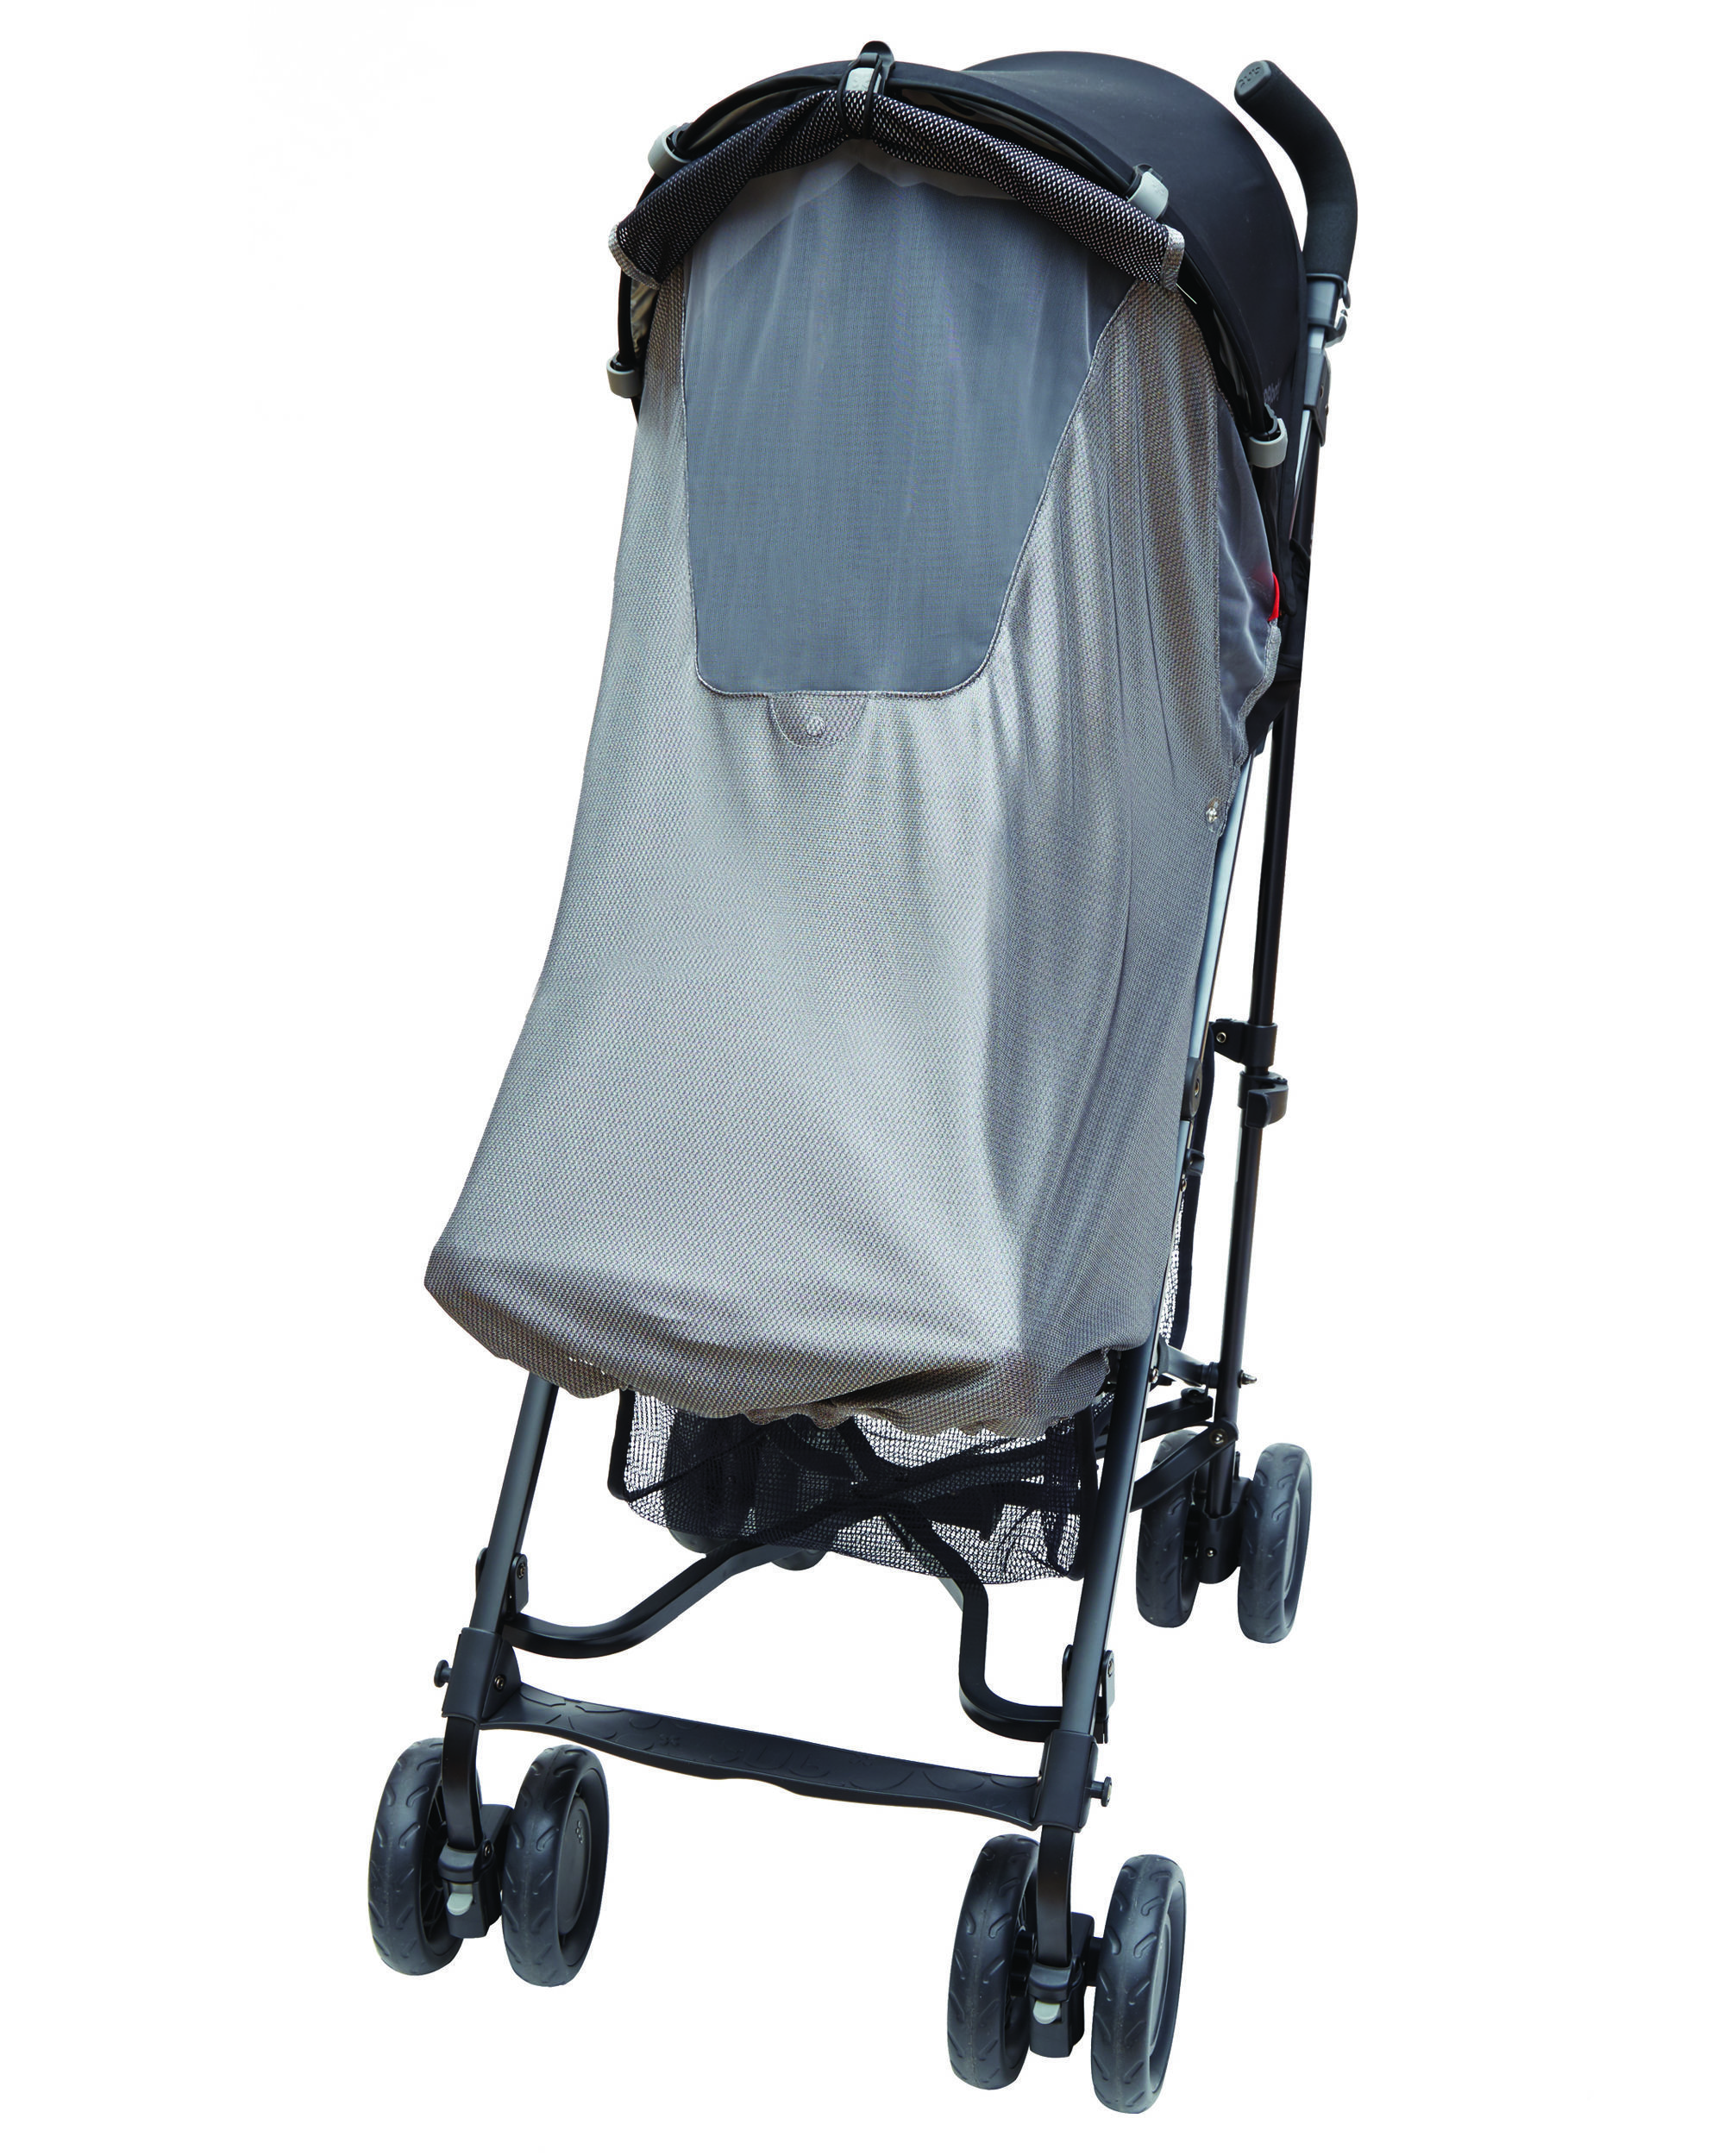 Wagen Für Kinder Skip Hop Stroll Go Stroller Sun And Sleep Shade On The Go